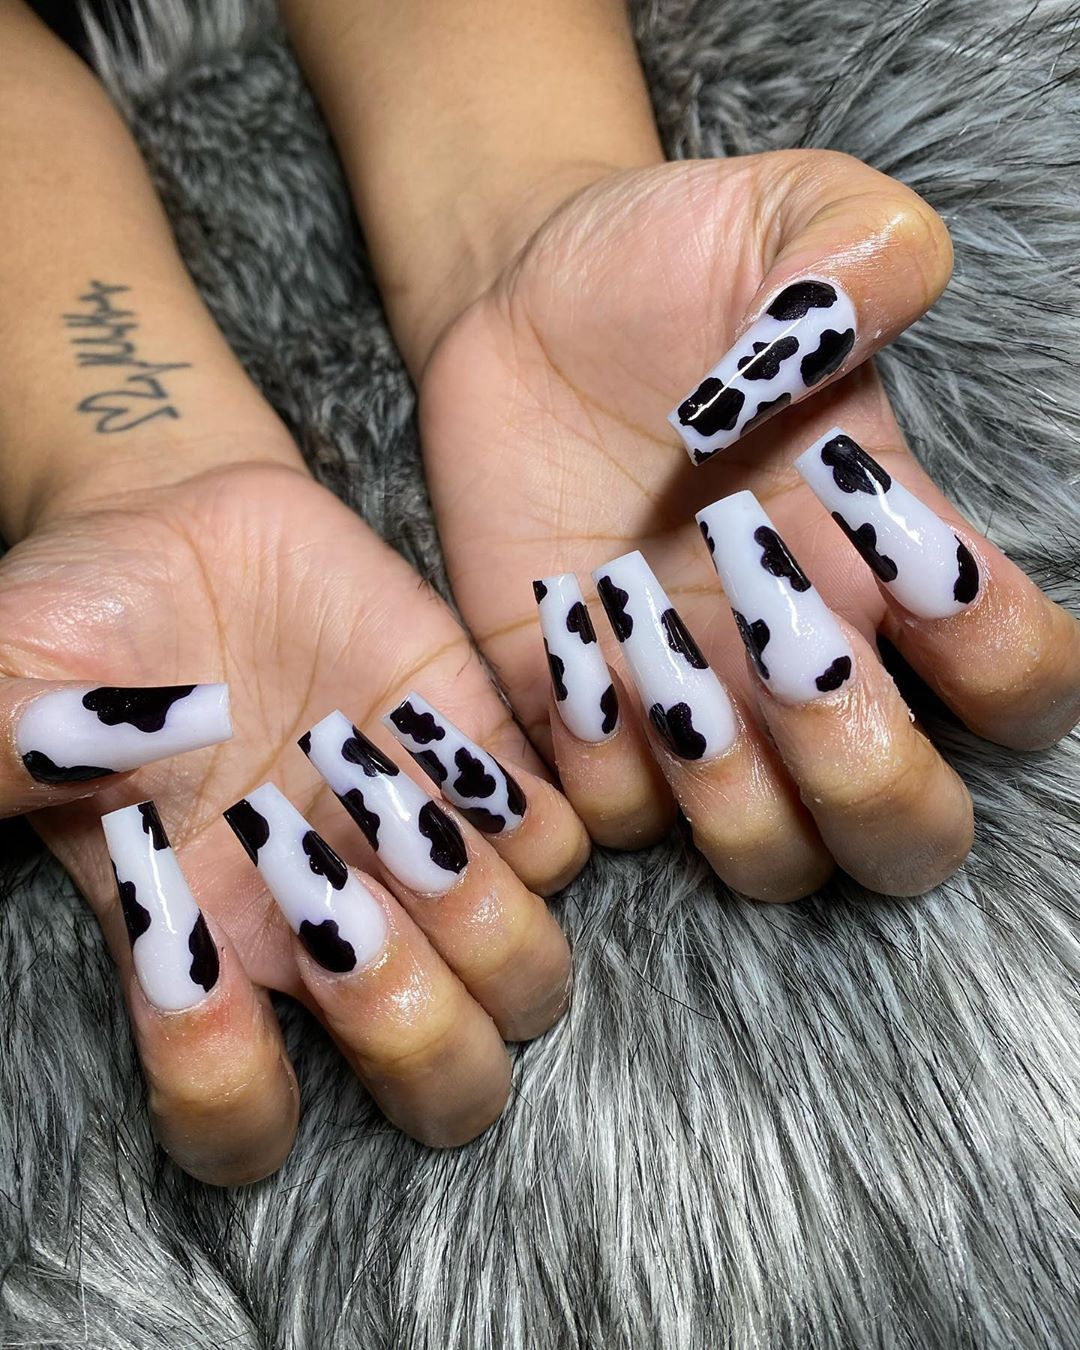 Leoriveraa On Instagram Click Book In Bio Houstonnails Houstonnailartist Houstonnailtech Houstonnailart In 2020 Cow Nails Dream Nails Long Acrylic Nails